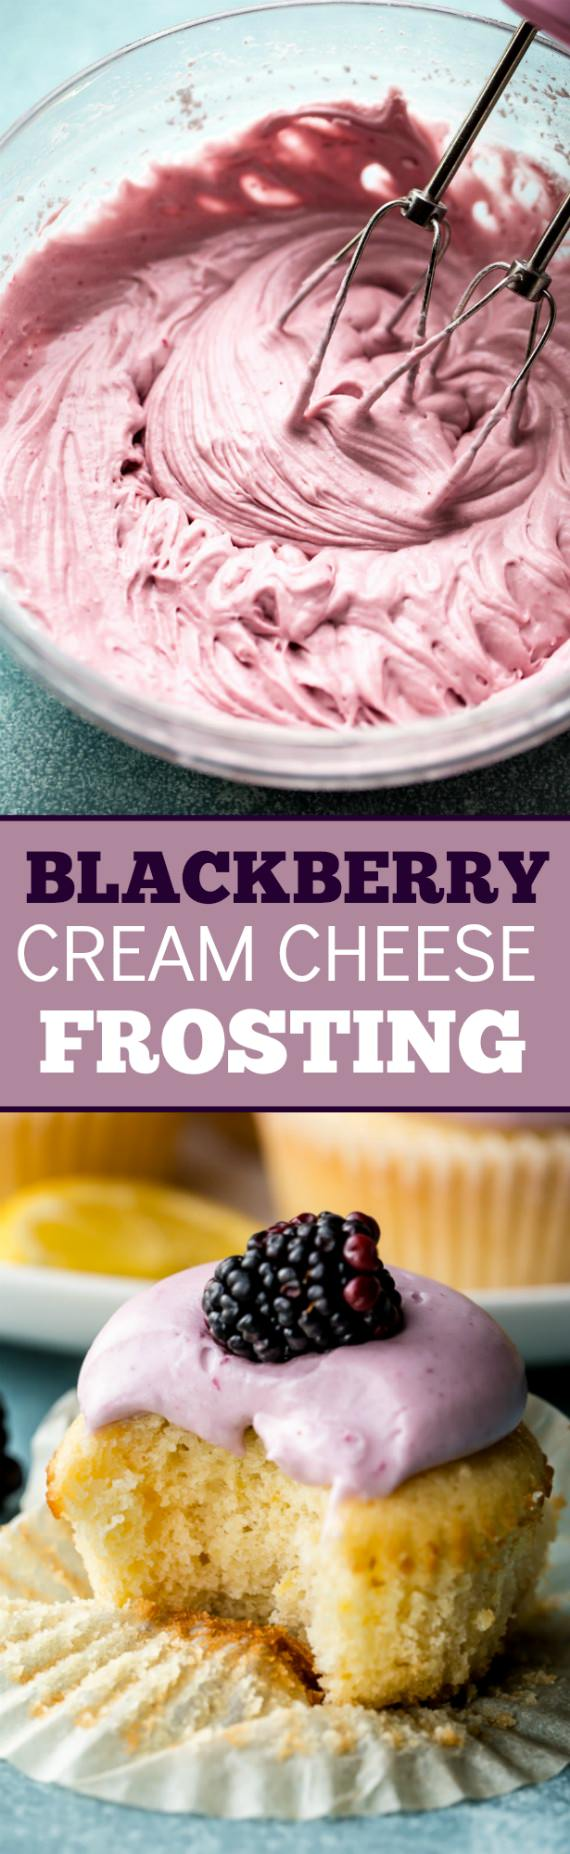 Everyone flipped for these soft and fluffy lemon cupcakes with blackberry cream cheese frosting. They're light, fluffy, and exploding with flavor!